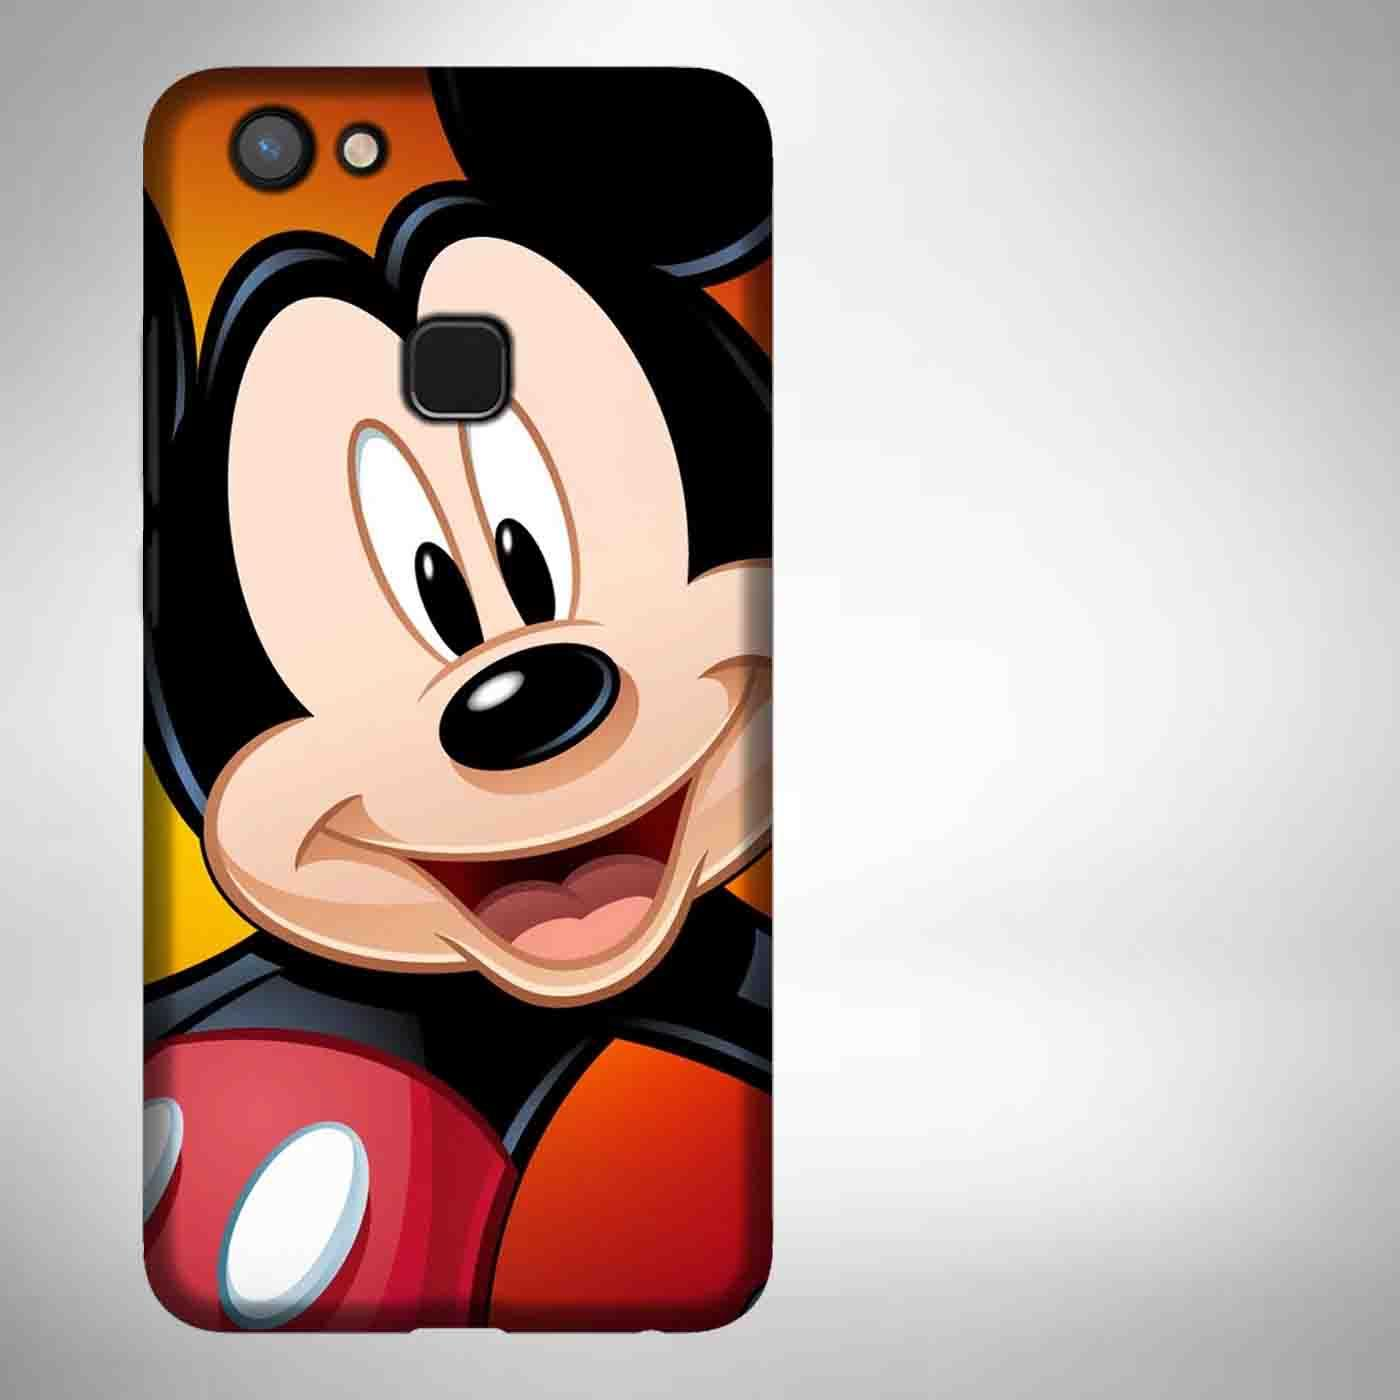 Mickey Mouse 6 Casing Custom Hardcase Full Print Vivo V7 Plus Case Cover